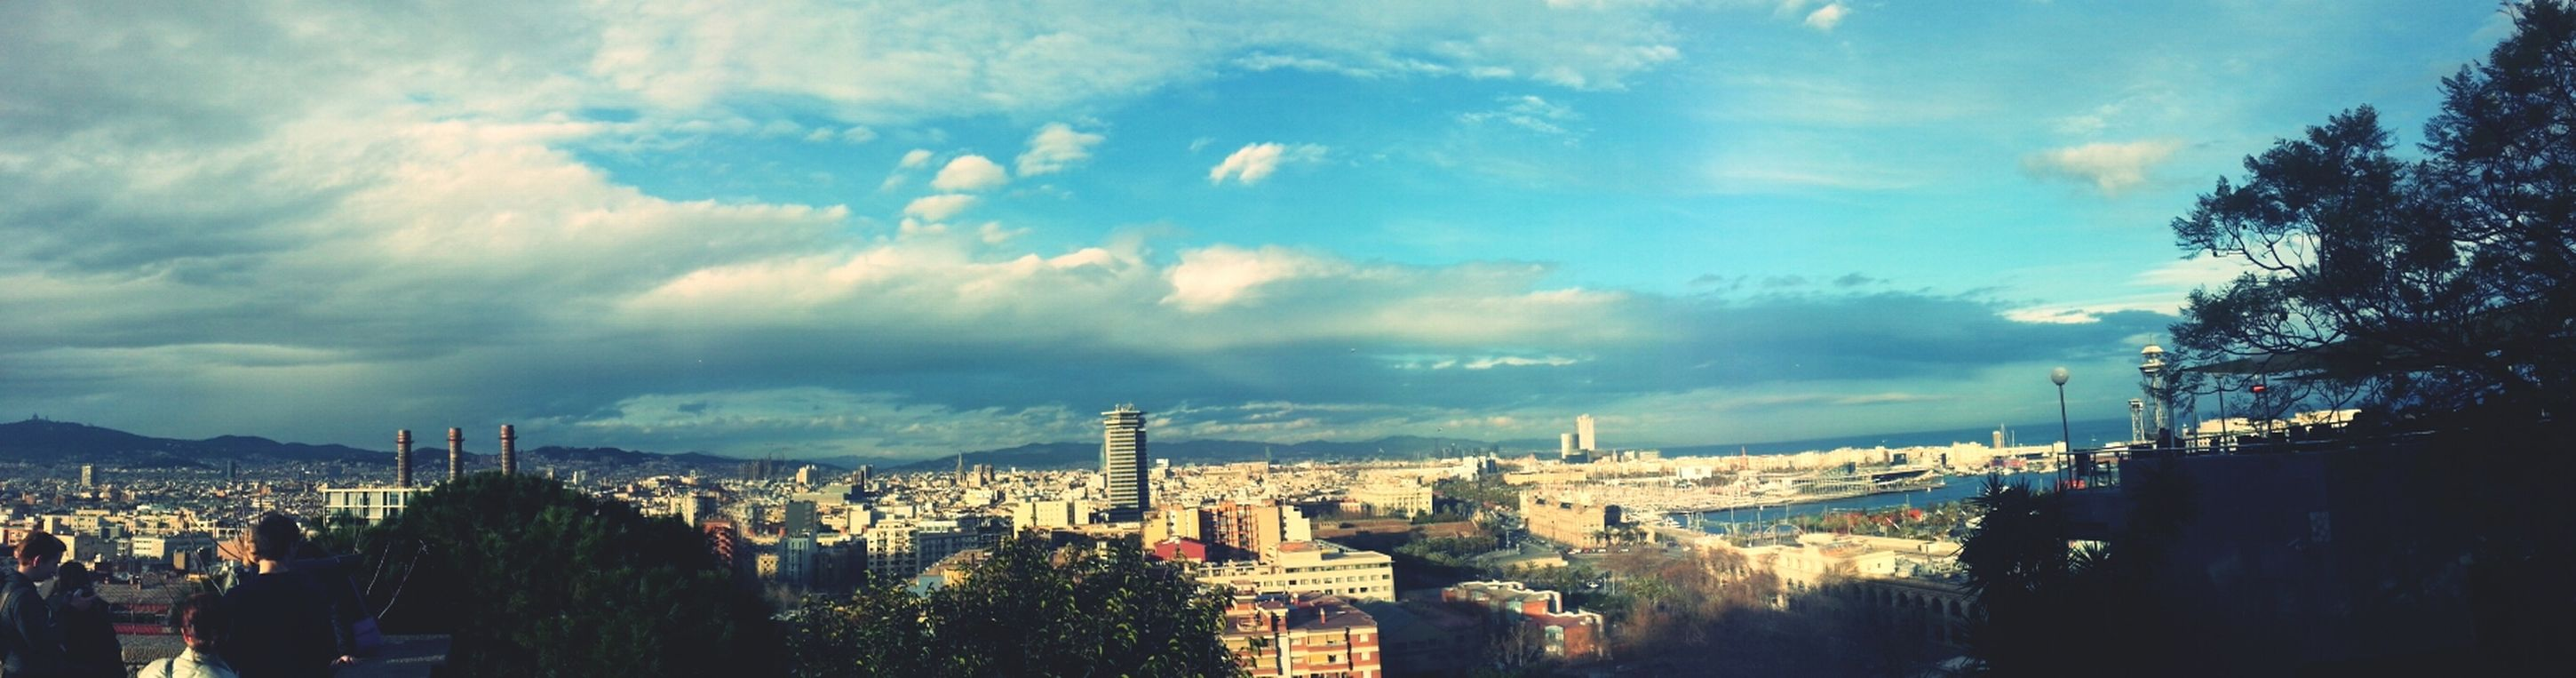 Skyline in Barcelona♡♥♡♥♡ with an epic Rainbow VuelingBotschafter